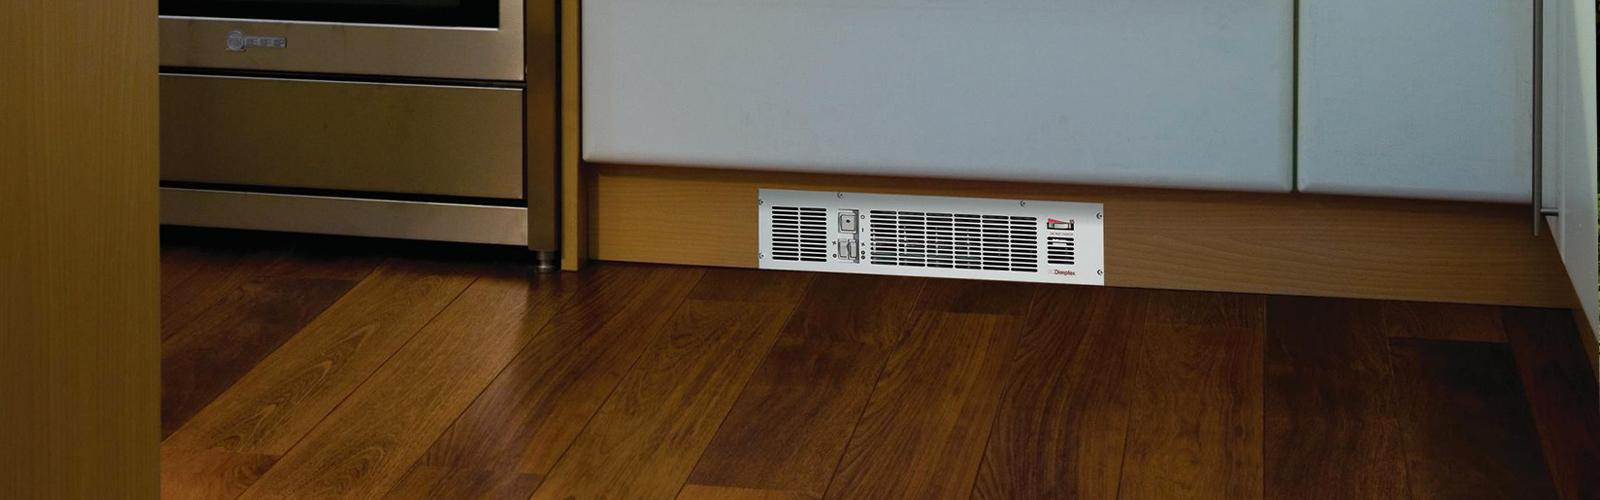 Installed Electric Fan Heaters From Dimplex Garage With Thermostat 1